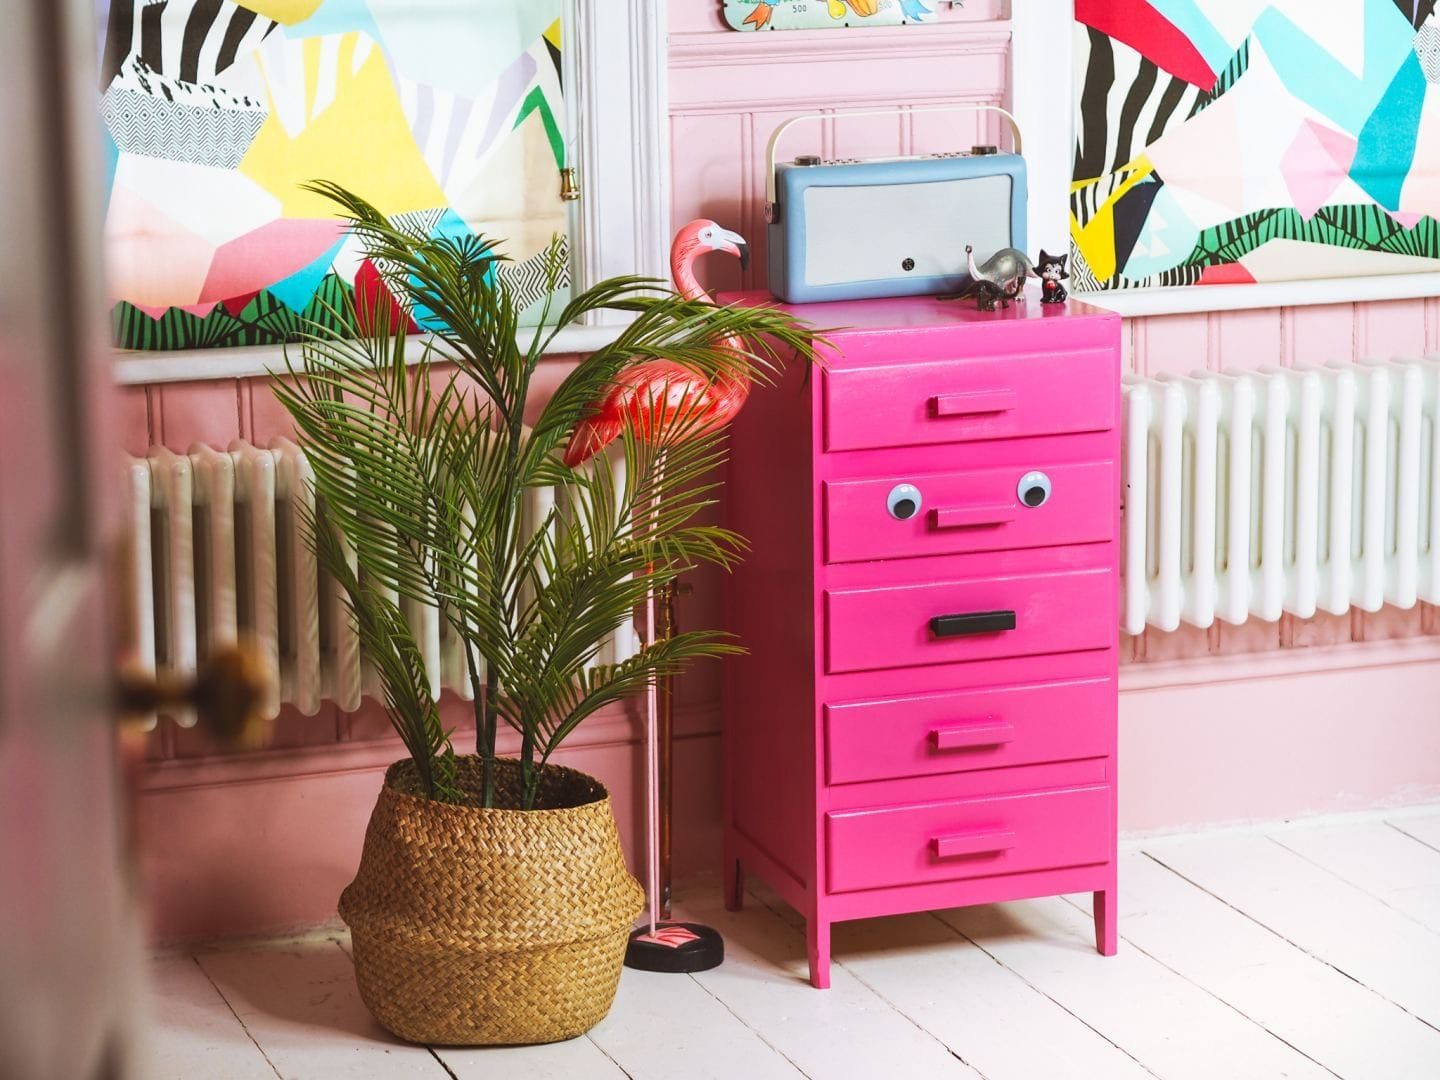 Home Video: A Tour Of My Super Kitsch Pink Office